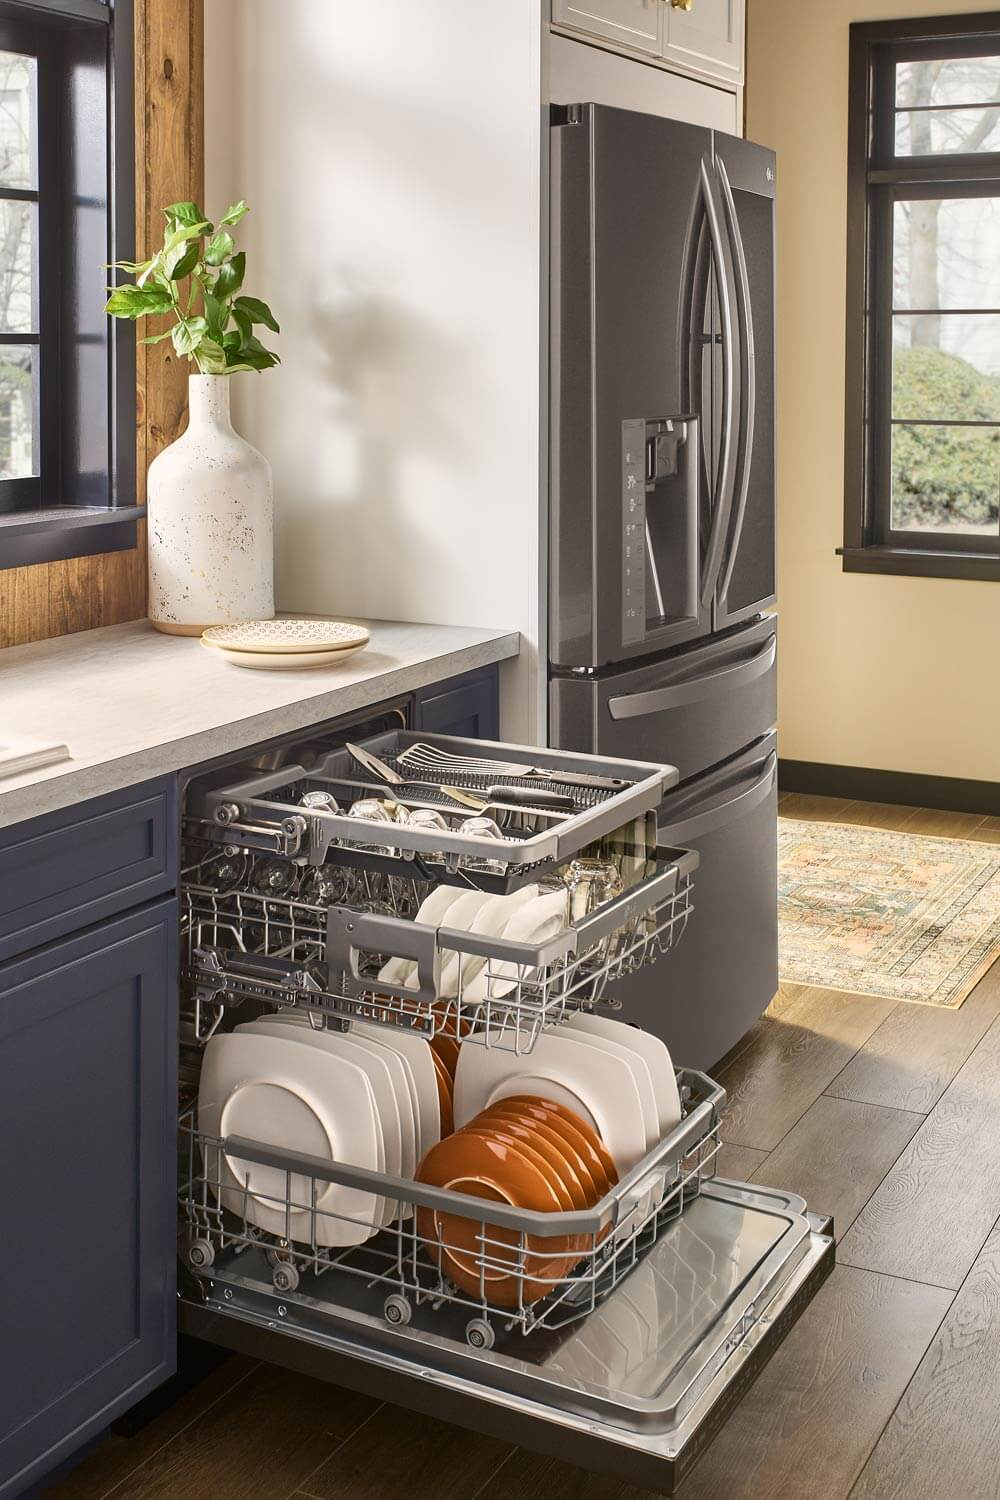 Picture of dishwasher